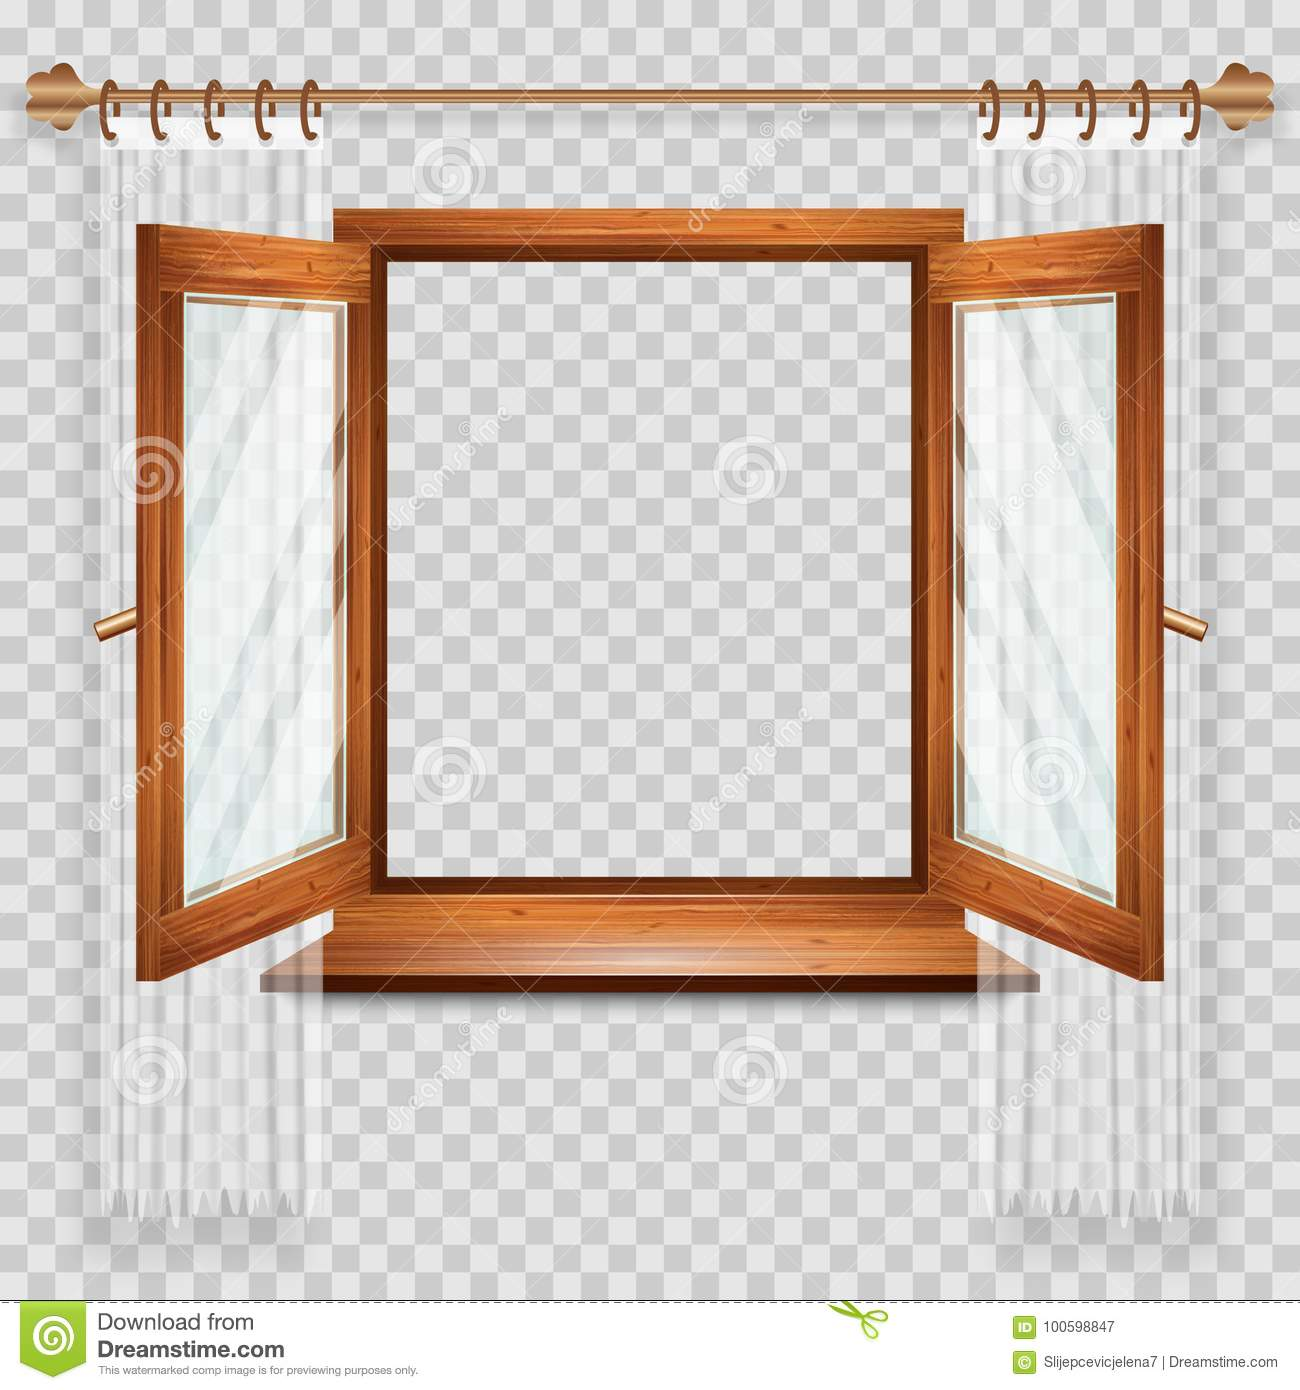 Transom Windows A Useful Design Element: Window Cartoons, Illustrations & Vector Stock Images